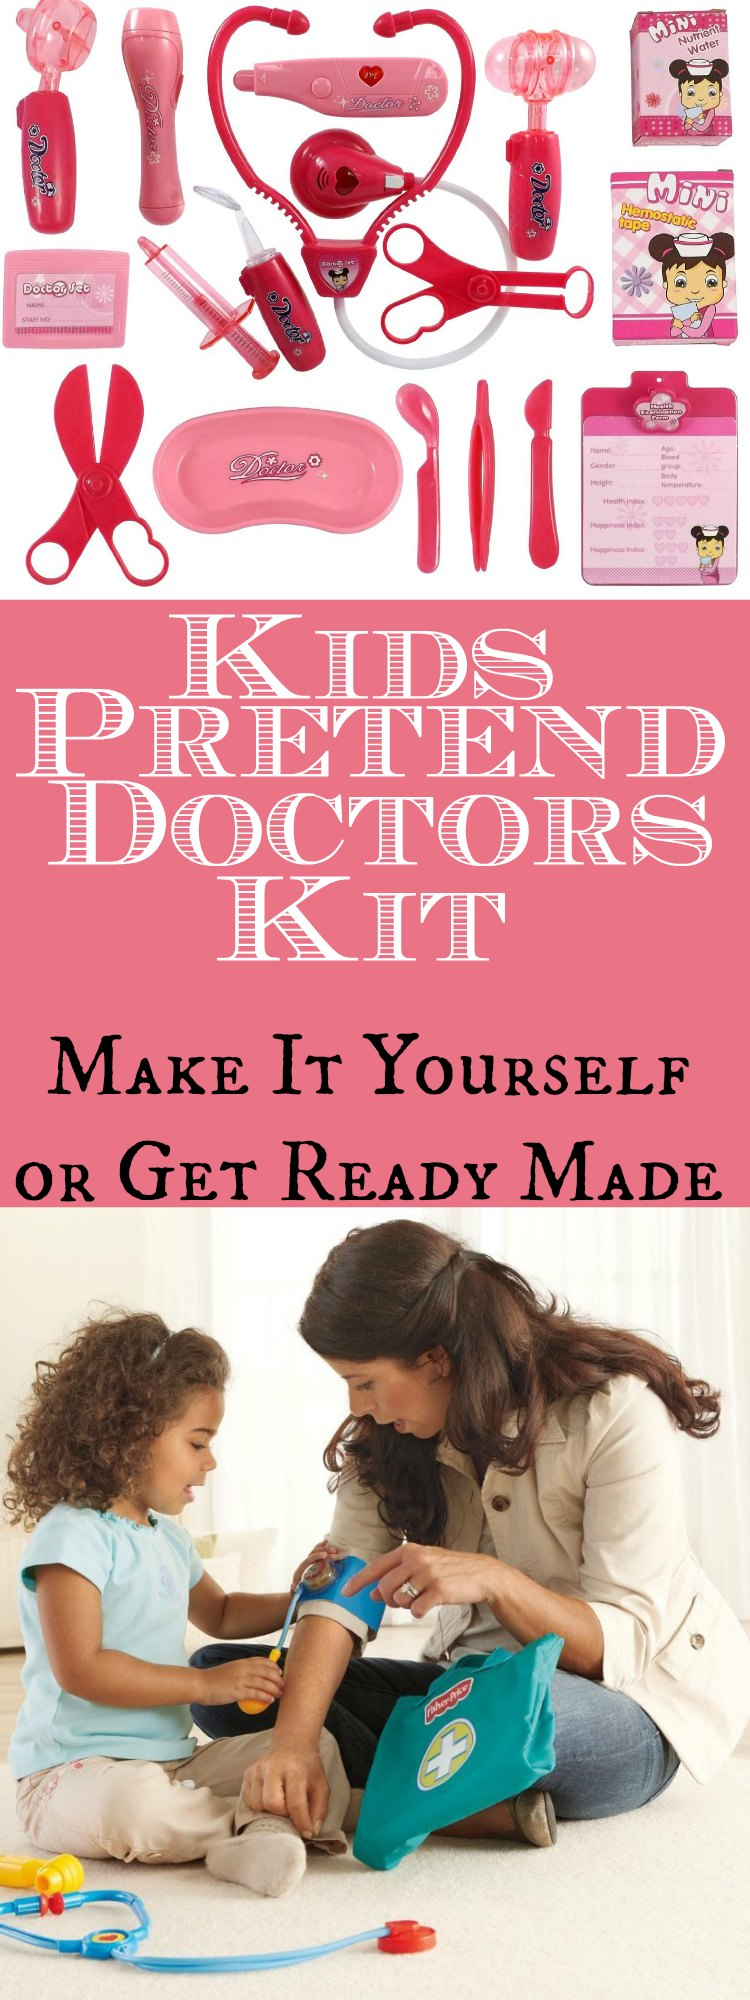 Pretend Doctors Kit